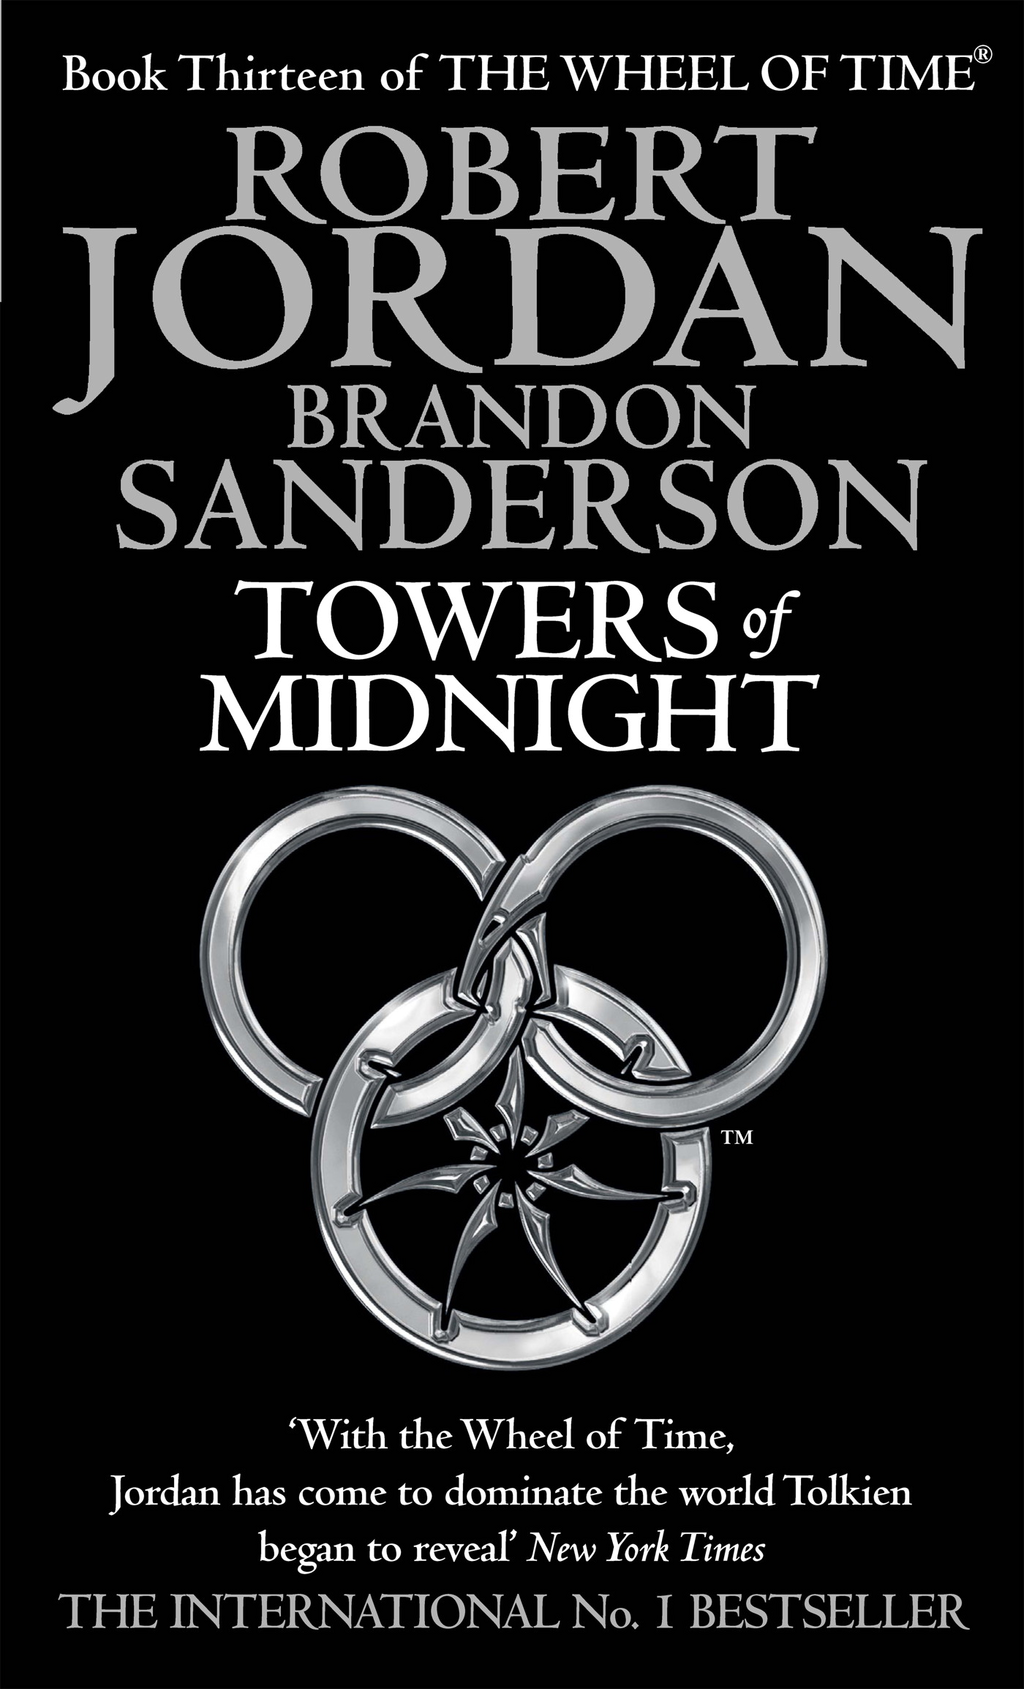 Towers of Midnight Book Thirteen of the Wheel of Time